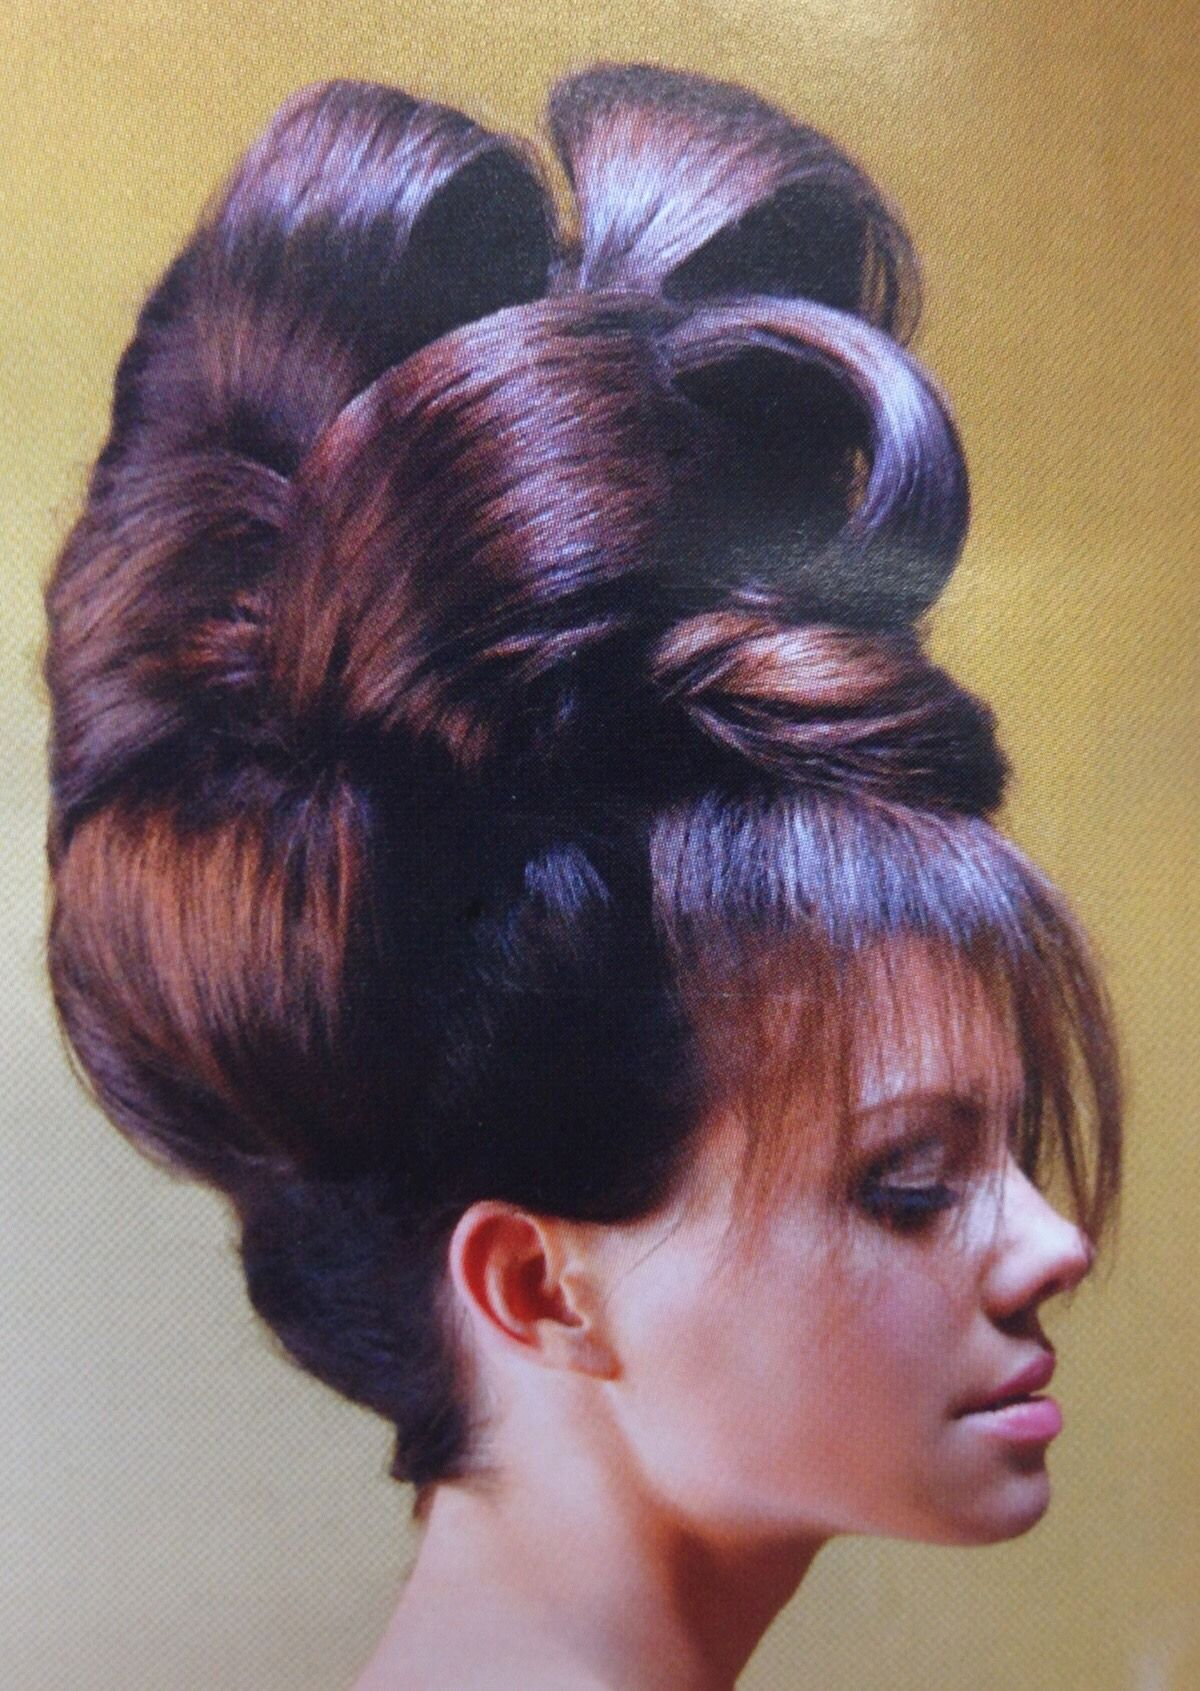 #Hair @jeanettes-hair-obsession (With images) | Teased hair, Chignon hair, Beehive hair